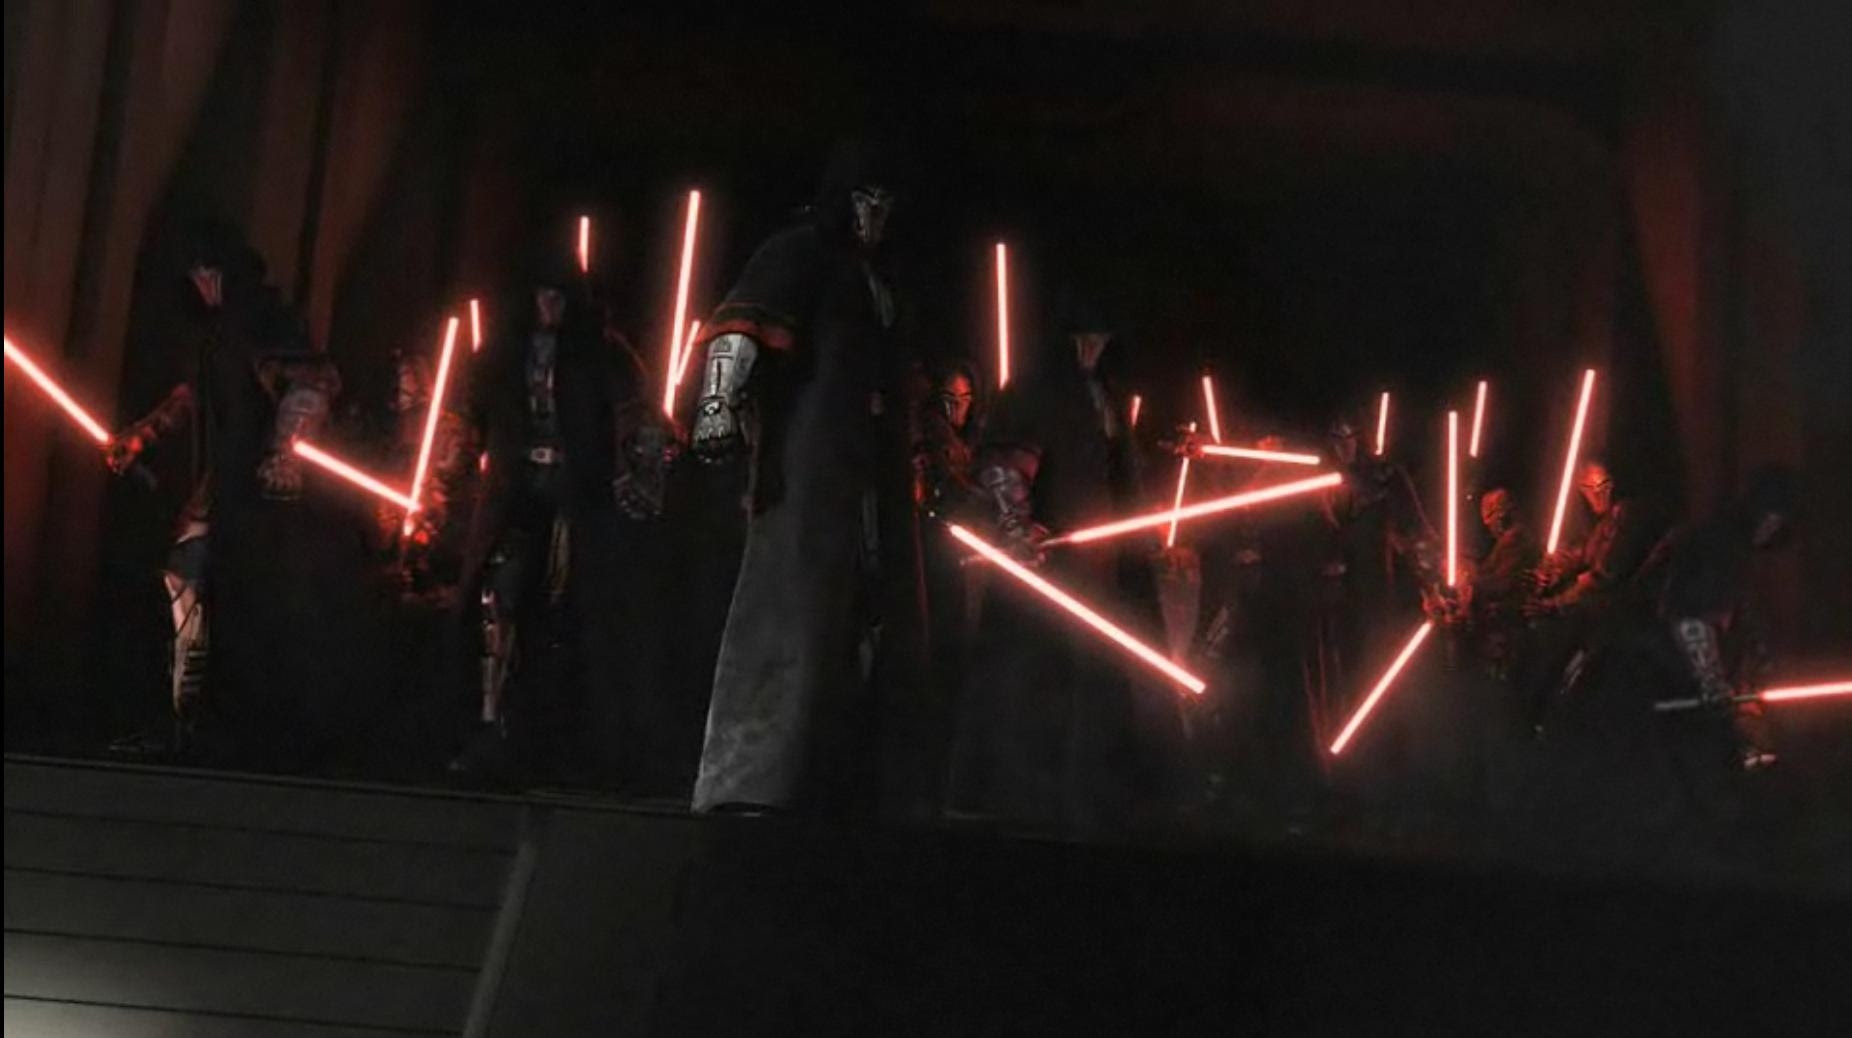 Lightsabers Sith Star Wars The Old Republic 1852x1038 Wallpaper